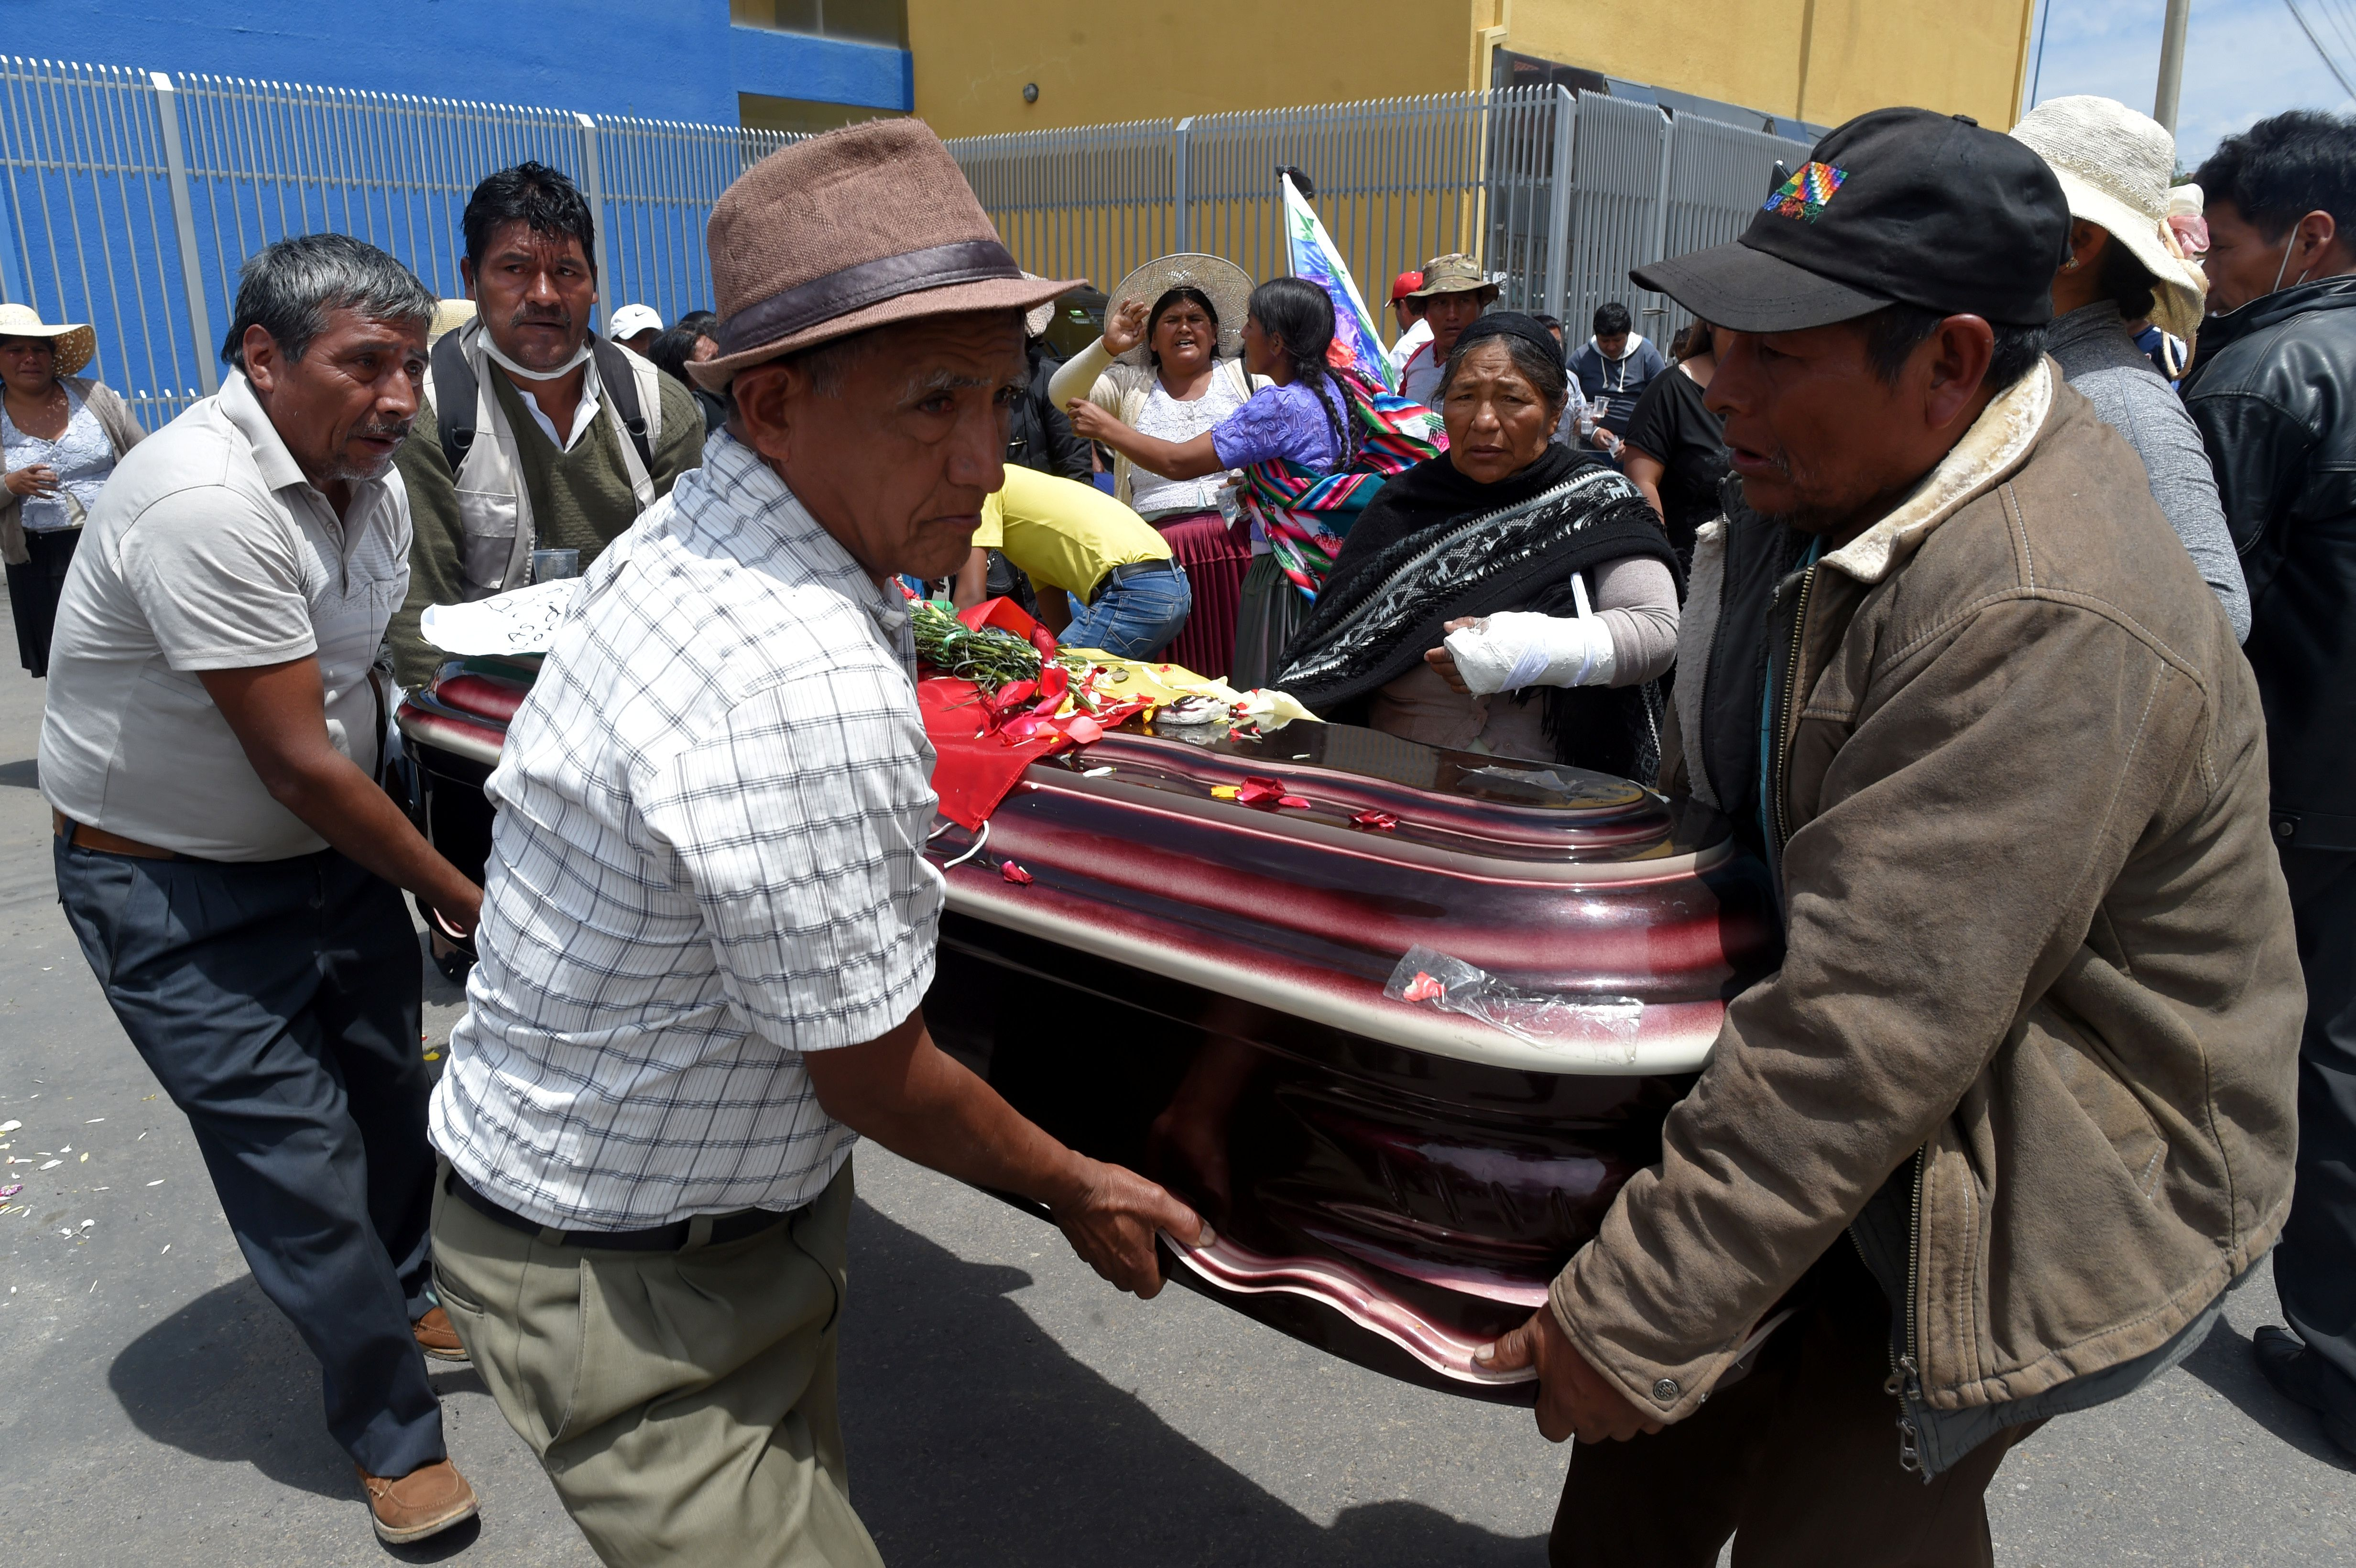 Relatives carry thye coffin of  a supporter of former Bolivia's President Evo Morales diead during clashes on Friday in Cochabamba, Bolivia, November 16, 2019. REUTERS/Danilo Balderrama